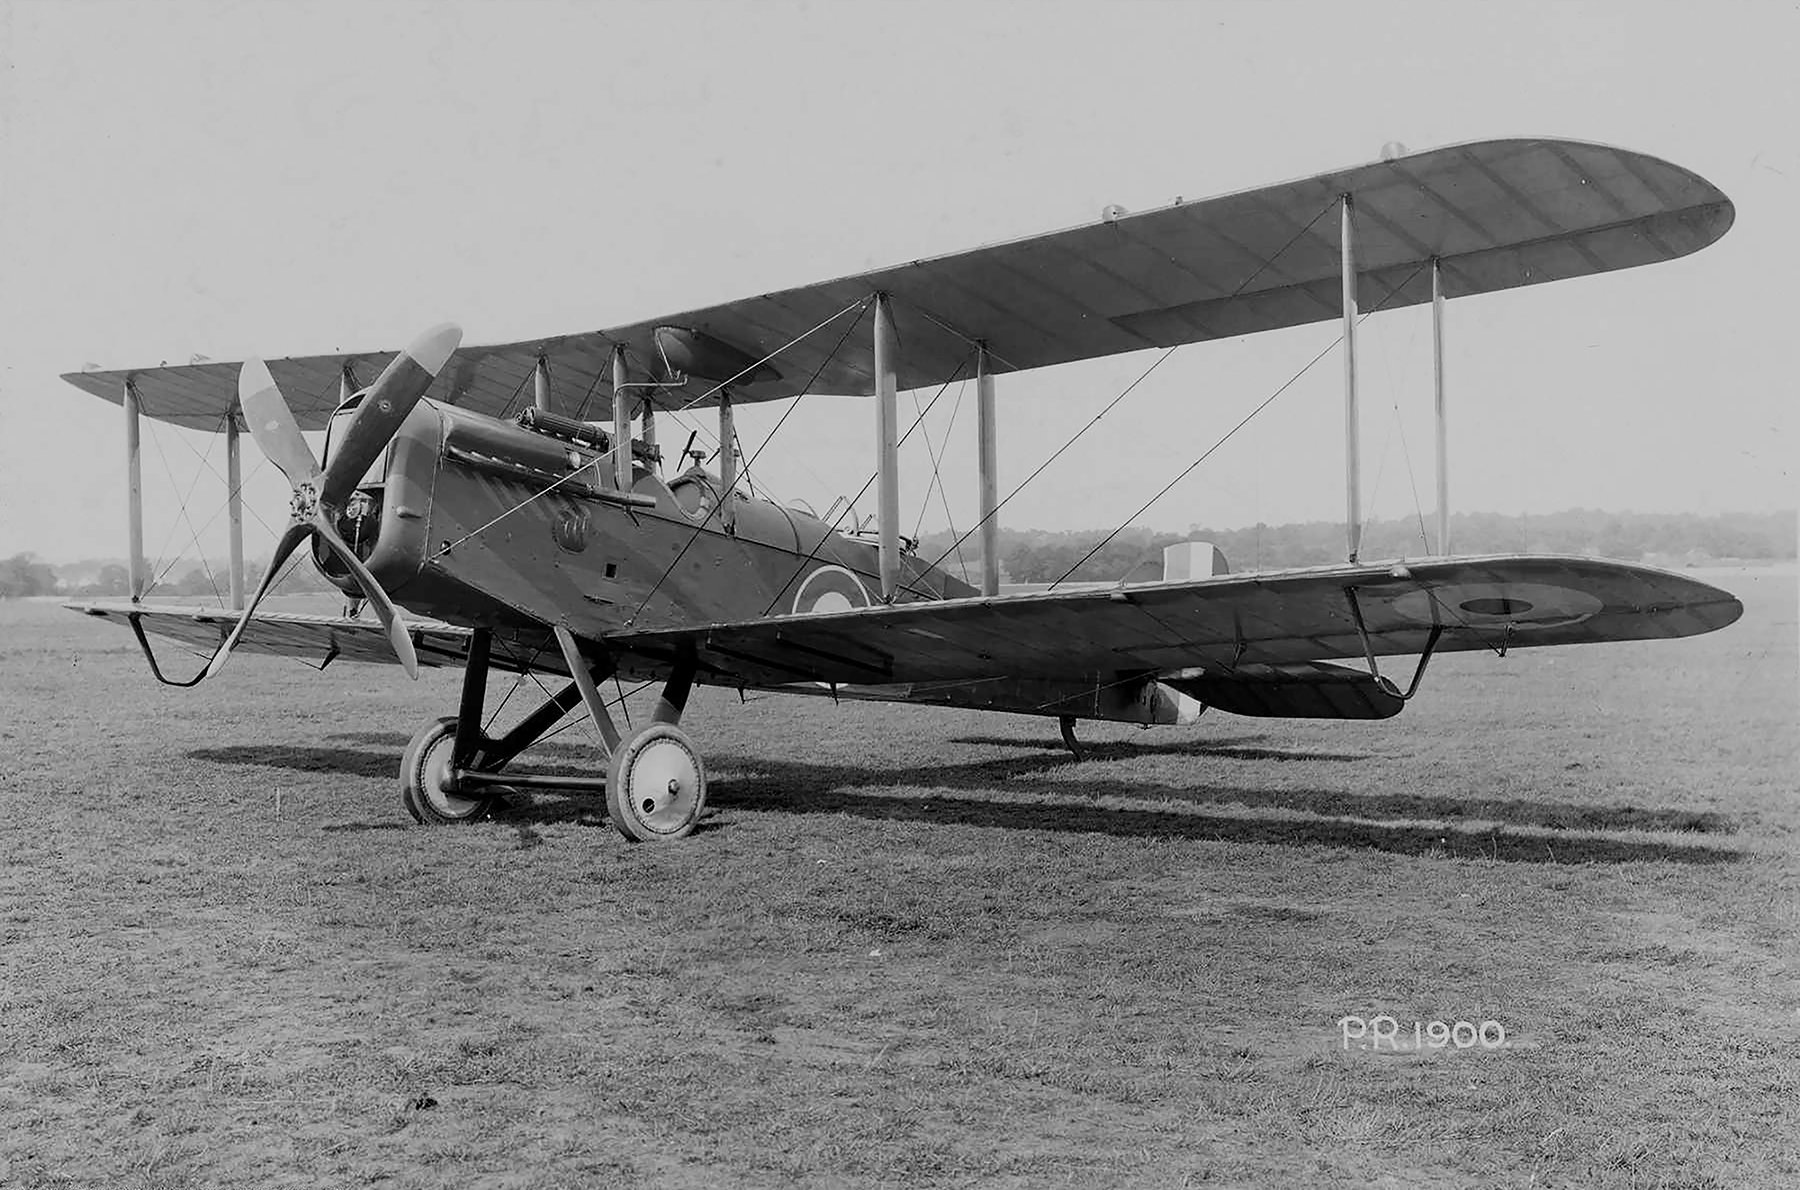 An undated photograph of an Airco De Havilland 4 light day bomber like the one Second Lieutenant Briggs Kilburn Adams had picked up for delivery to his squadron and which crashed on his return flight. Lieutenant Adams, 25, died in No. 10 Stationary Hospital on March 14, 1918. PHOTO: USAF, 050405-F-1234P